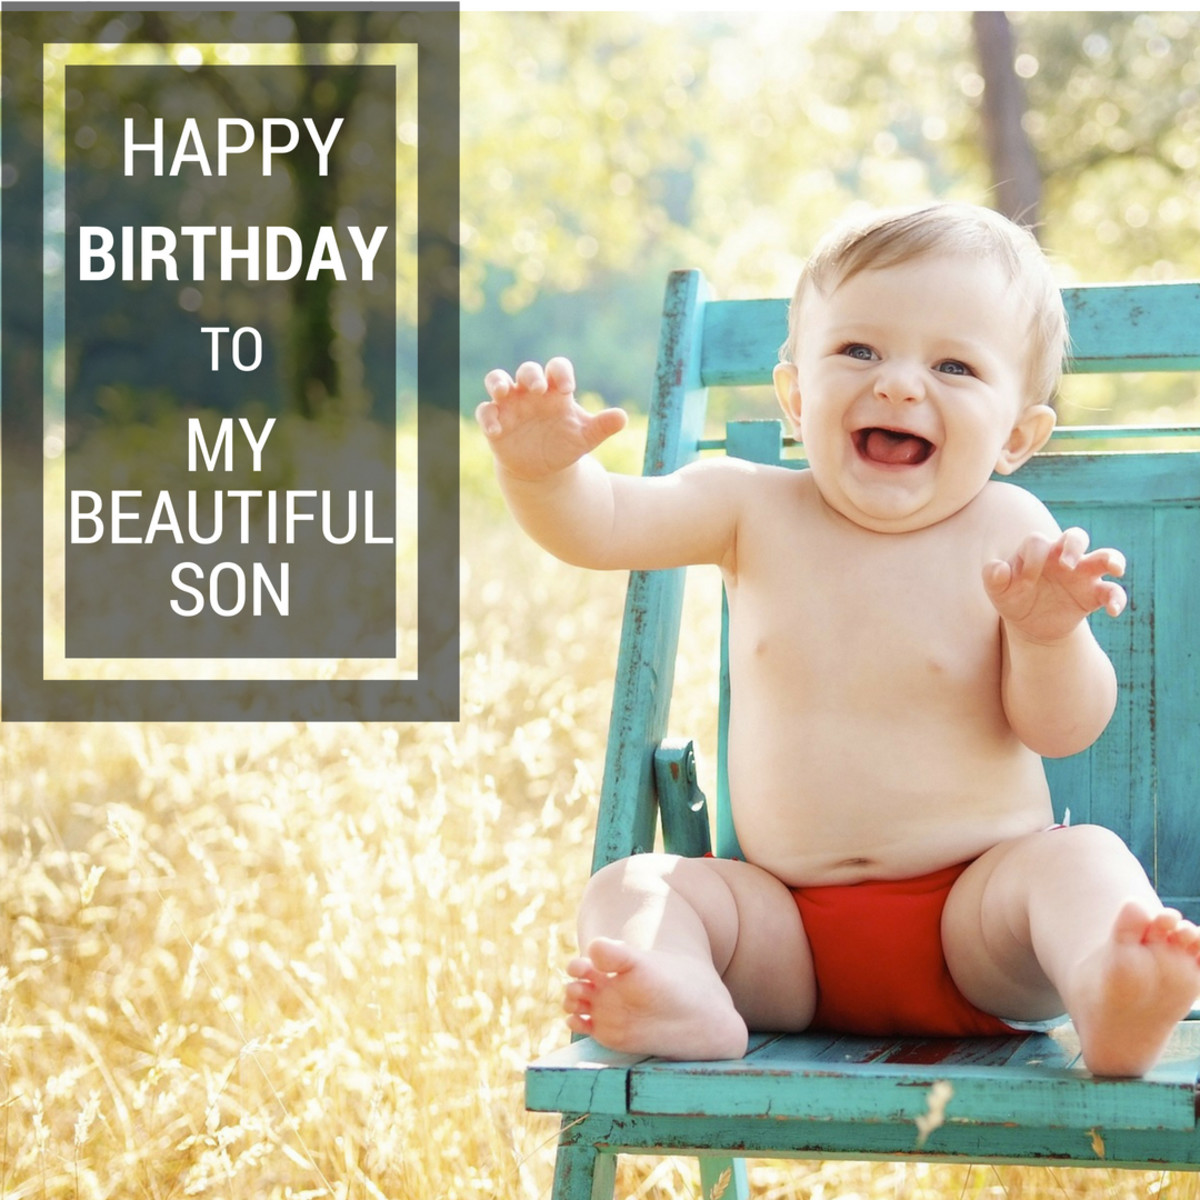 One Year Old Birthday Quotes: 50+ First Birthday Wishes, Poems, And Messages